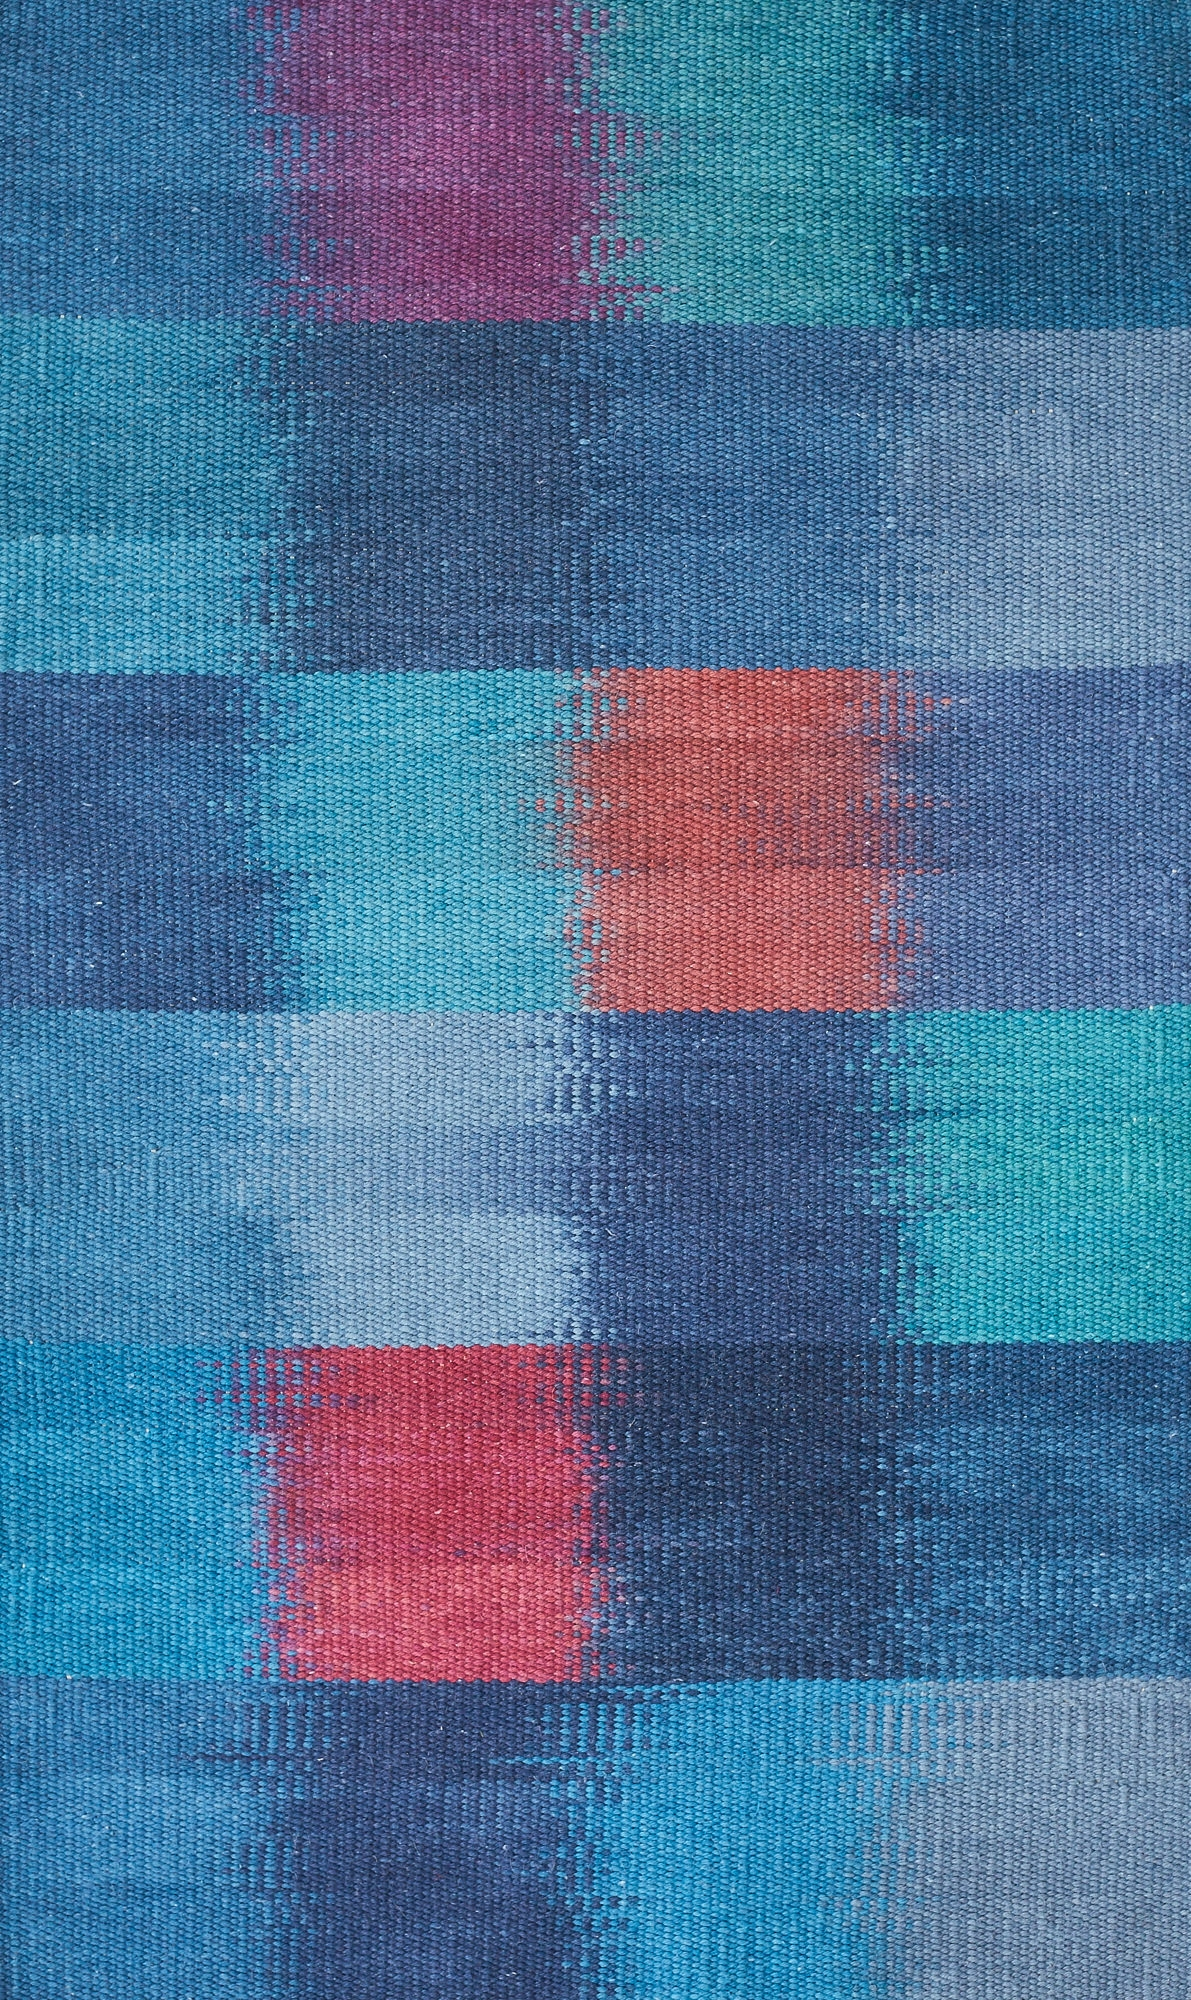 JJ0141  Cotton & linen. Hand dyed painted weft. 82 x 131 cm.